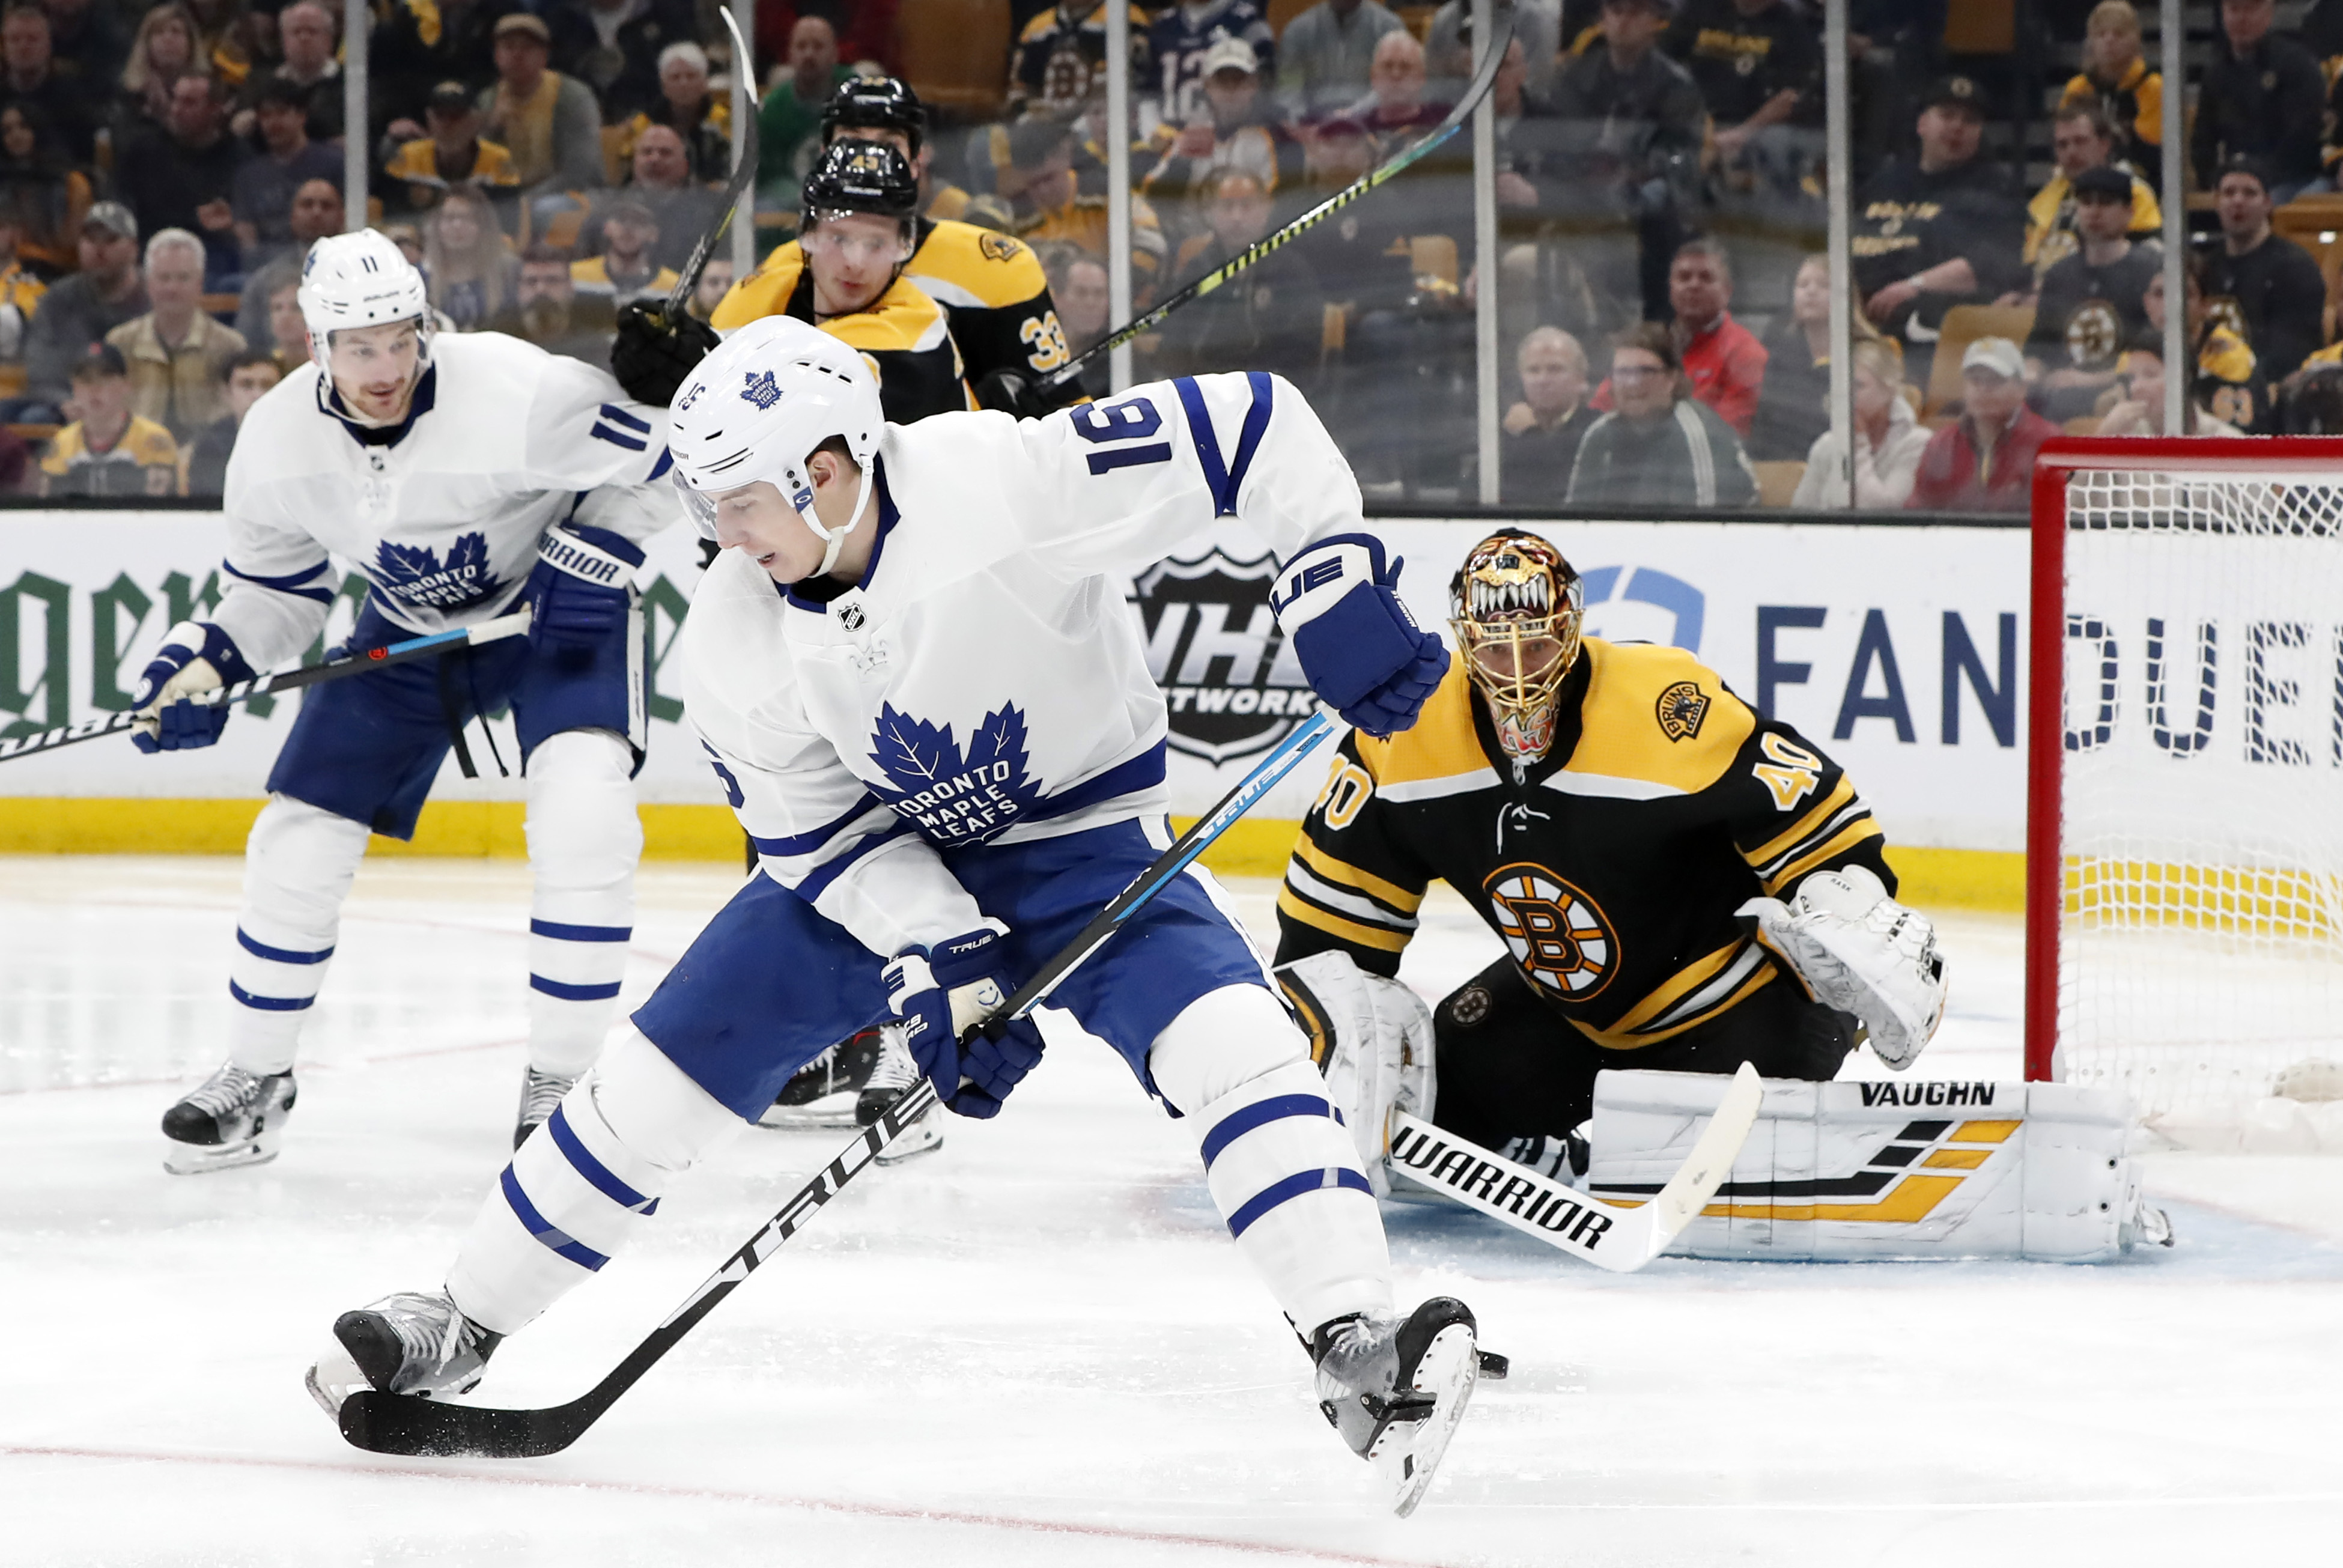 NHL: APR 23 Stanley Cup Playoffs First Round - Maple Leafs at Bruins